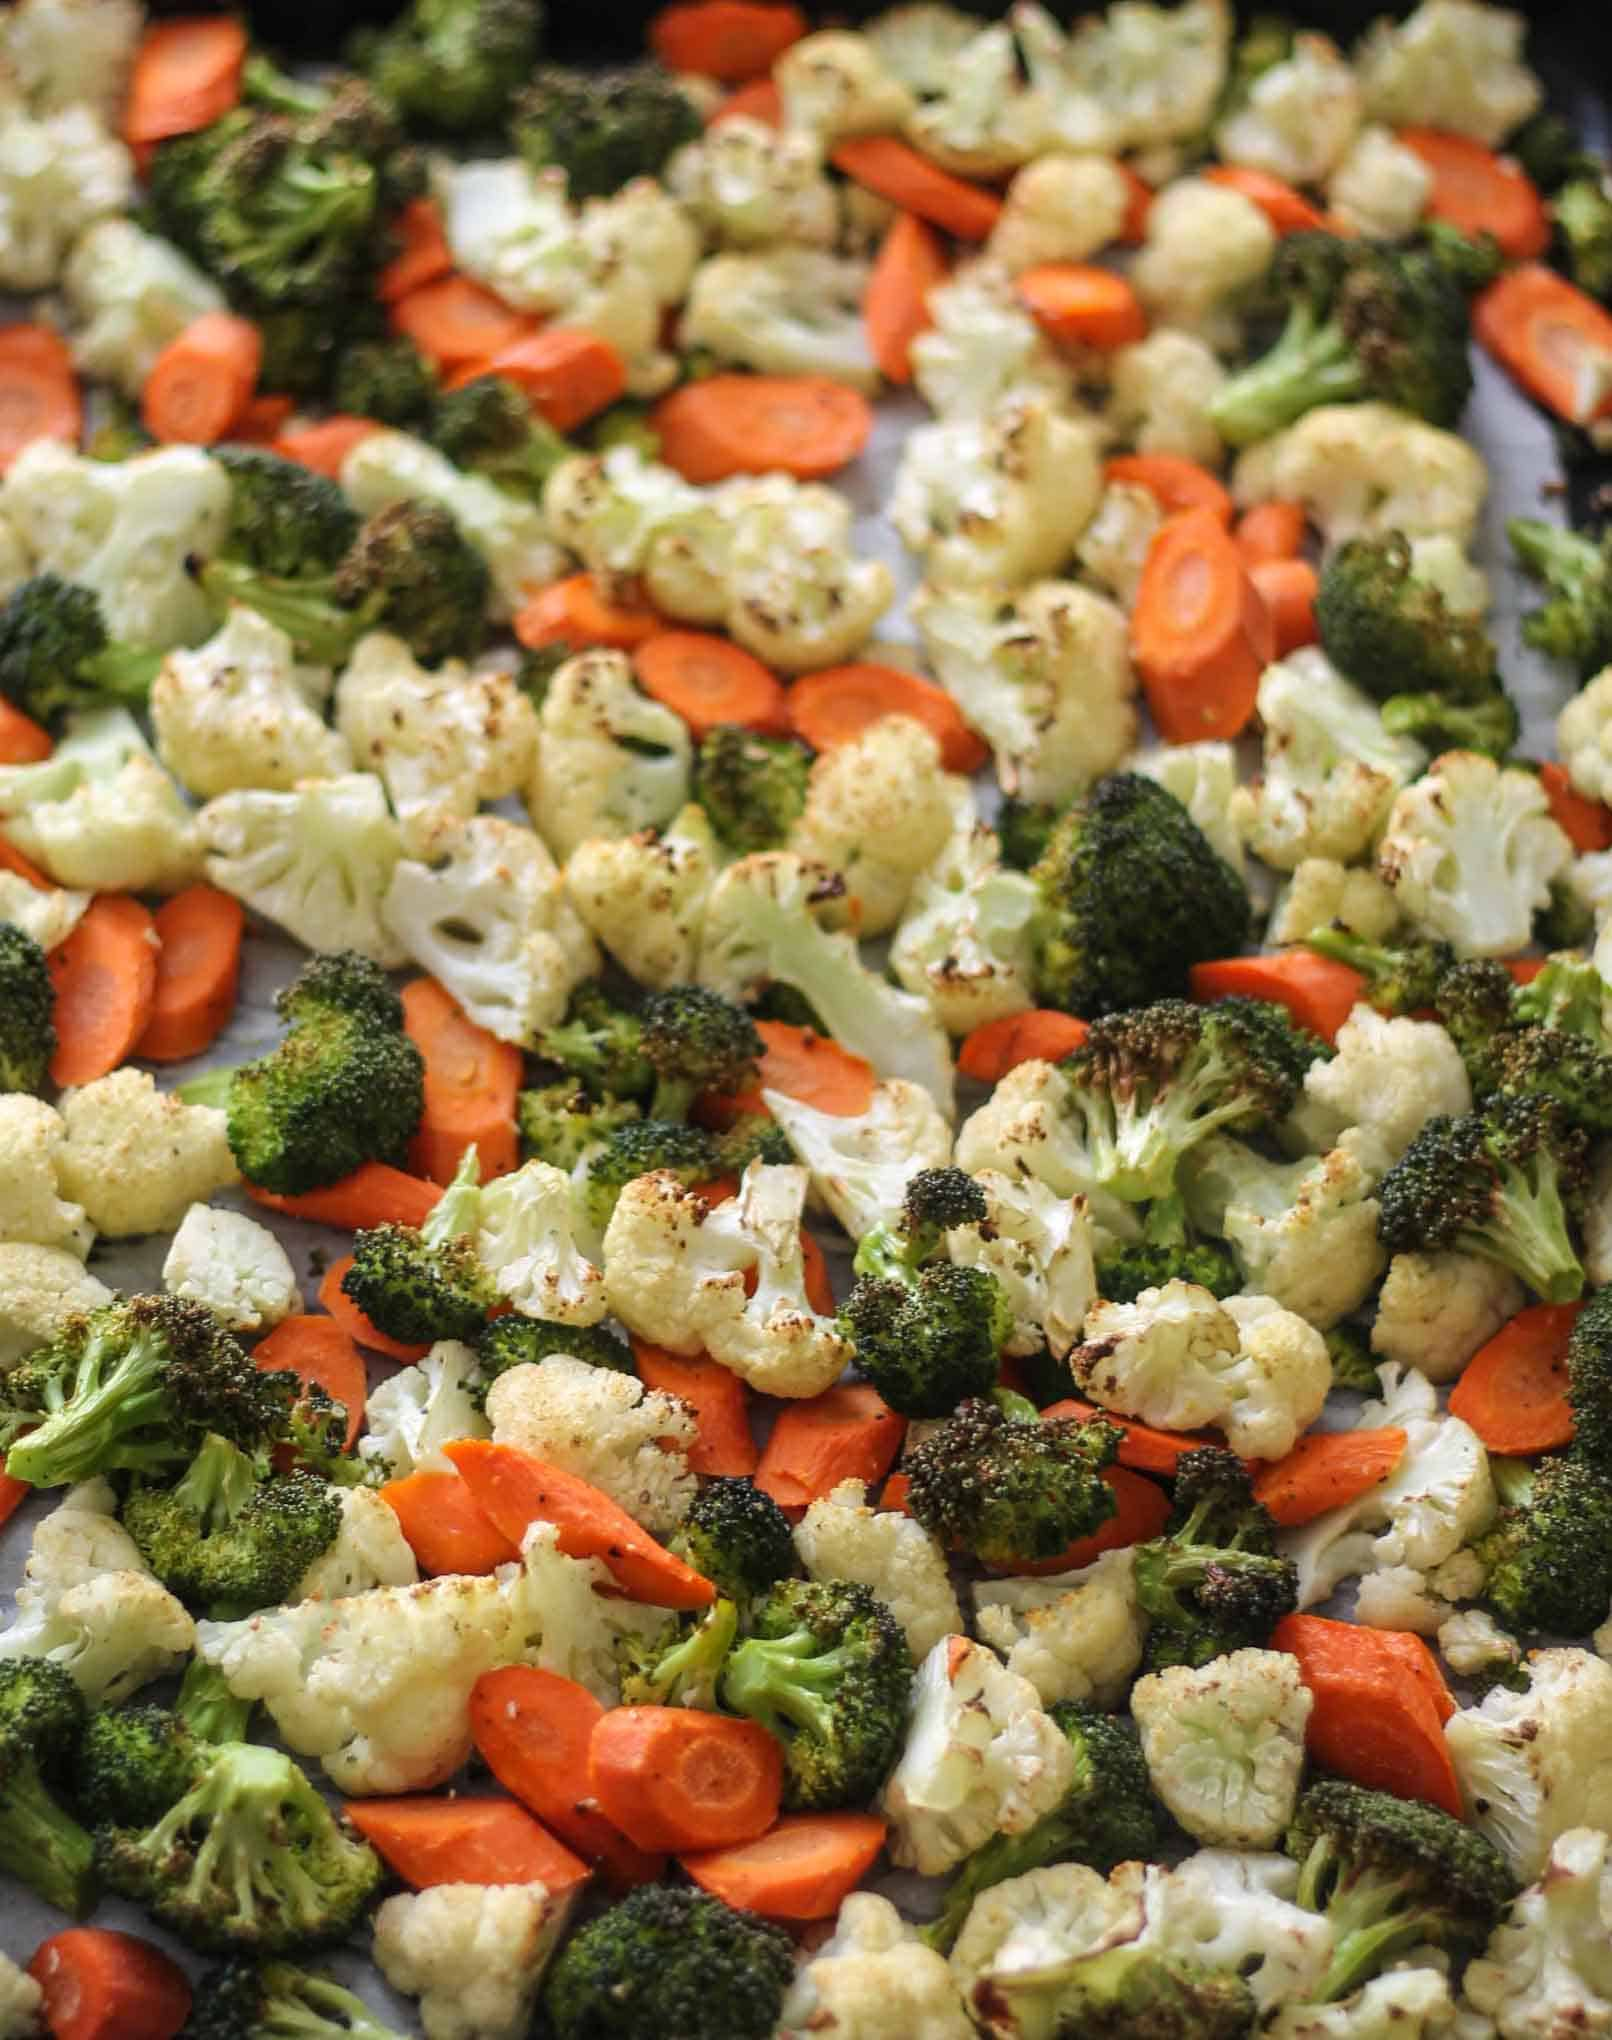 Roasted broccoli, carrots, and cauliflower on a sheet pan